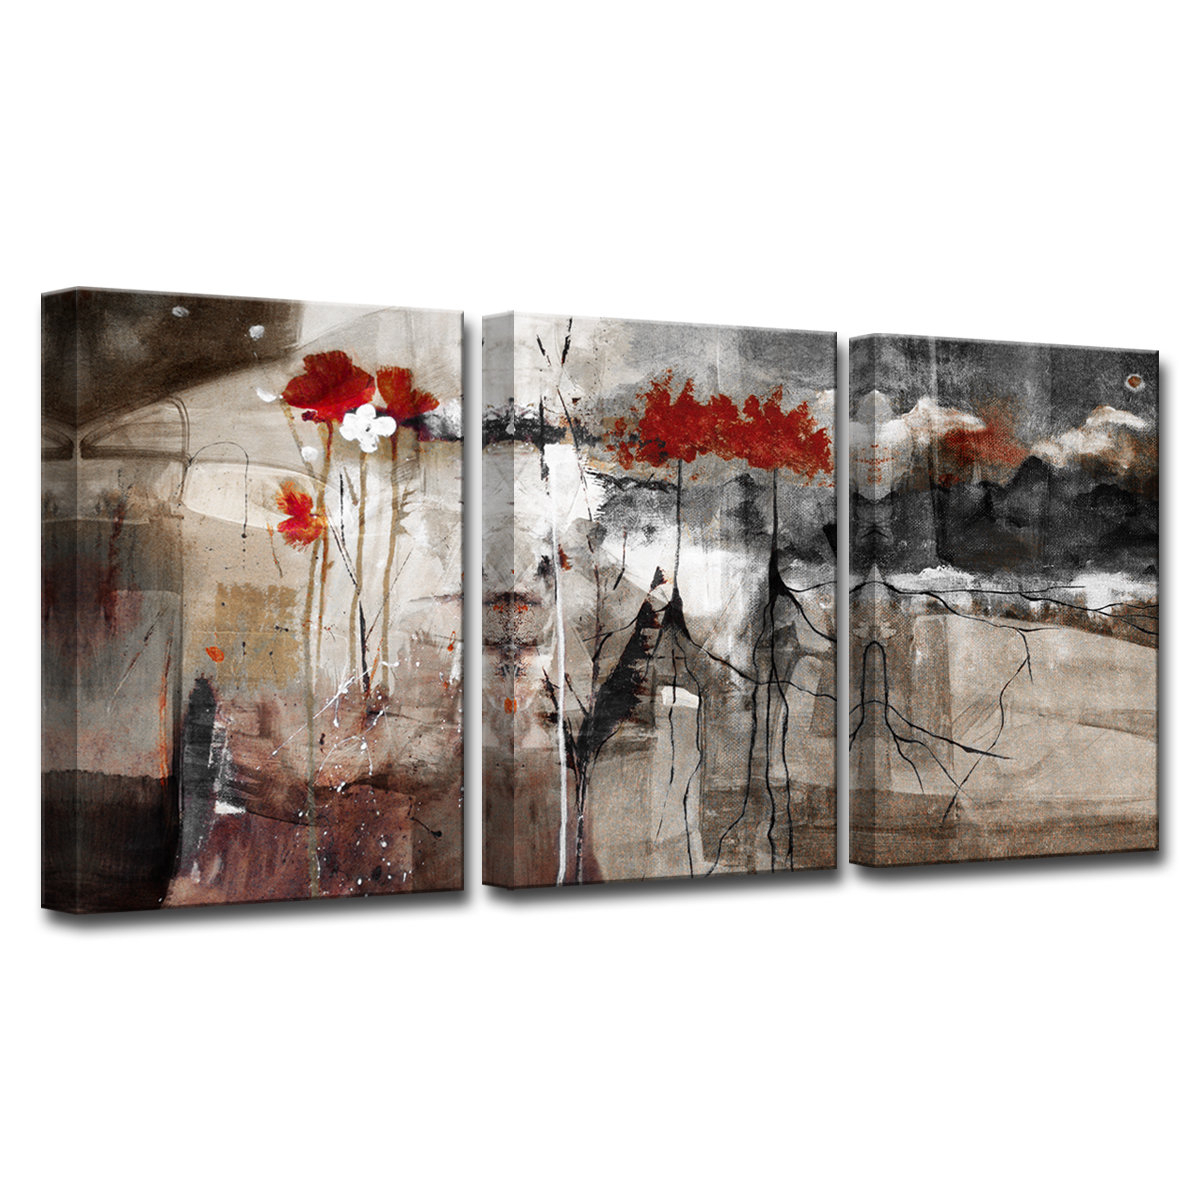 Wrought Studio 'abstract' 3 Piece Print Of Painting On Canvas Set In Trendy 3 Piece Wall Decor Sets By Wrought Studio (View 17 of 20)